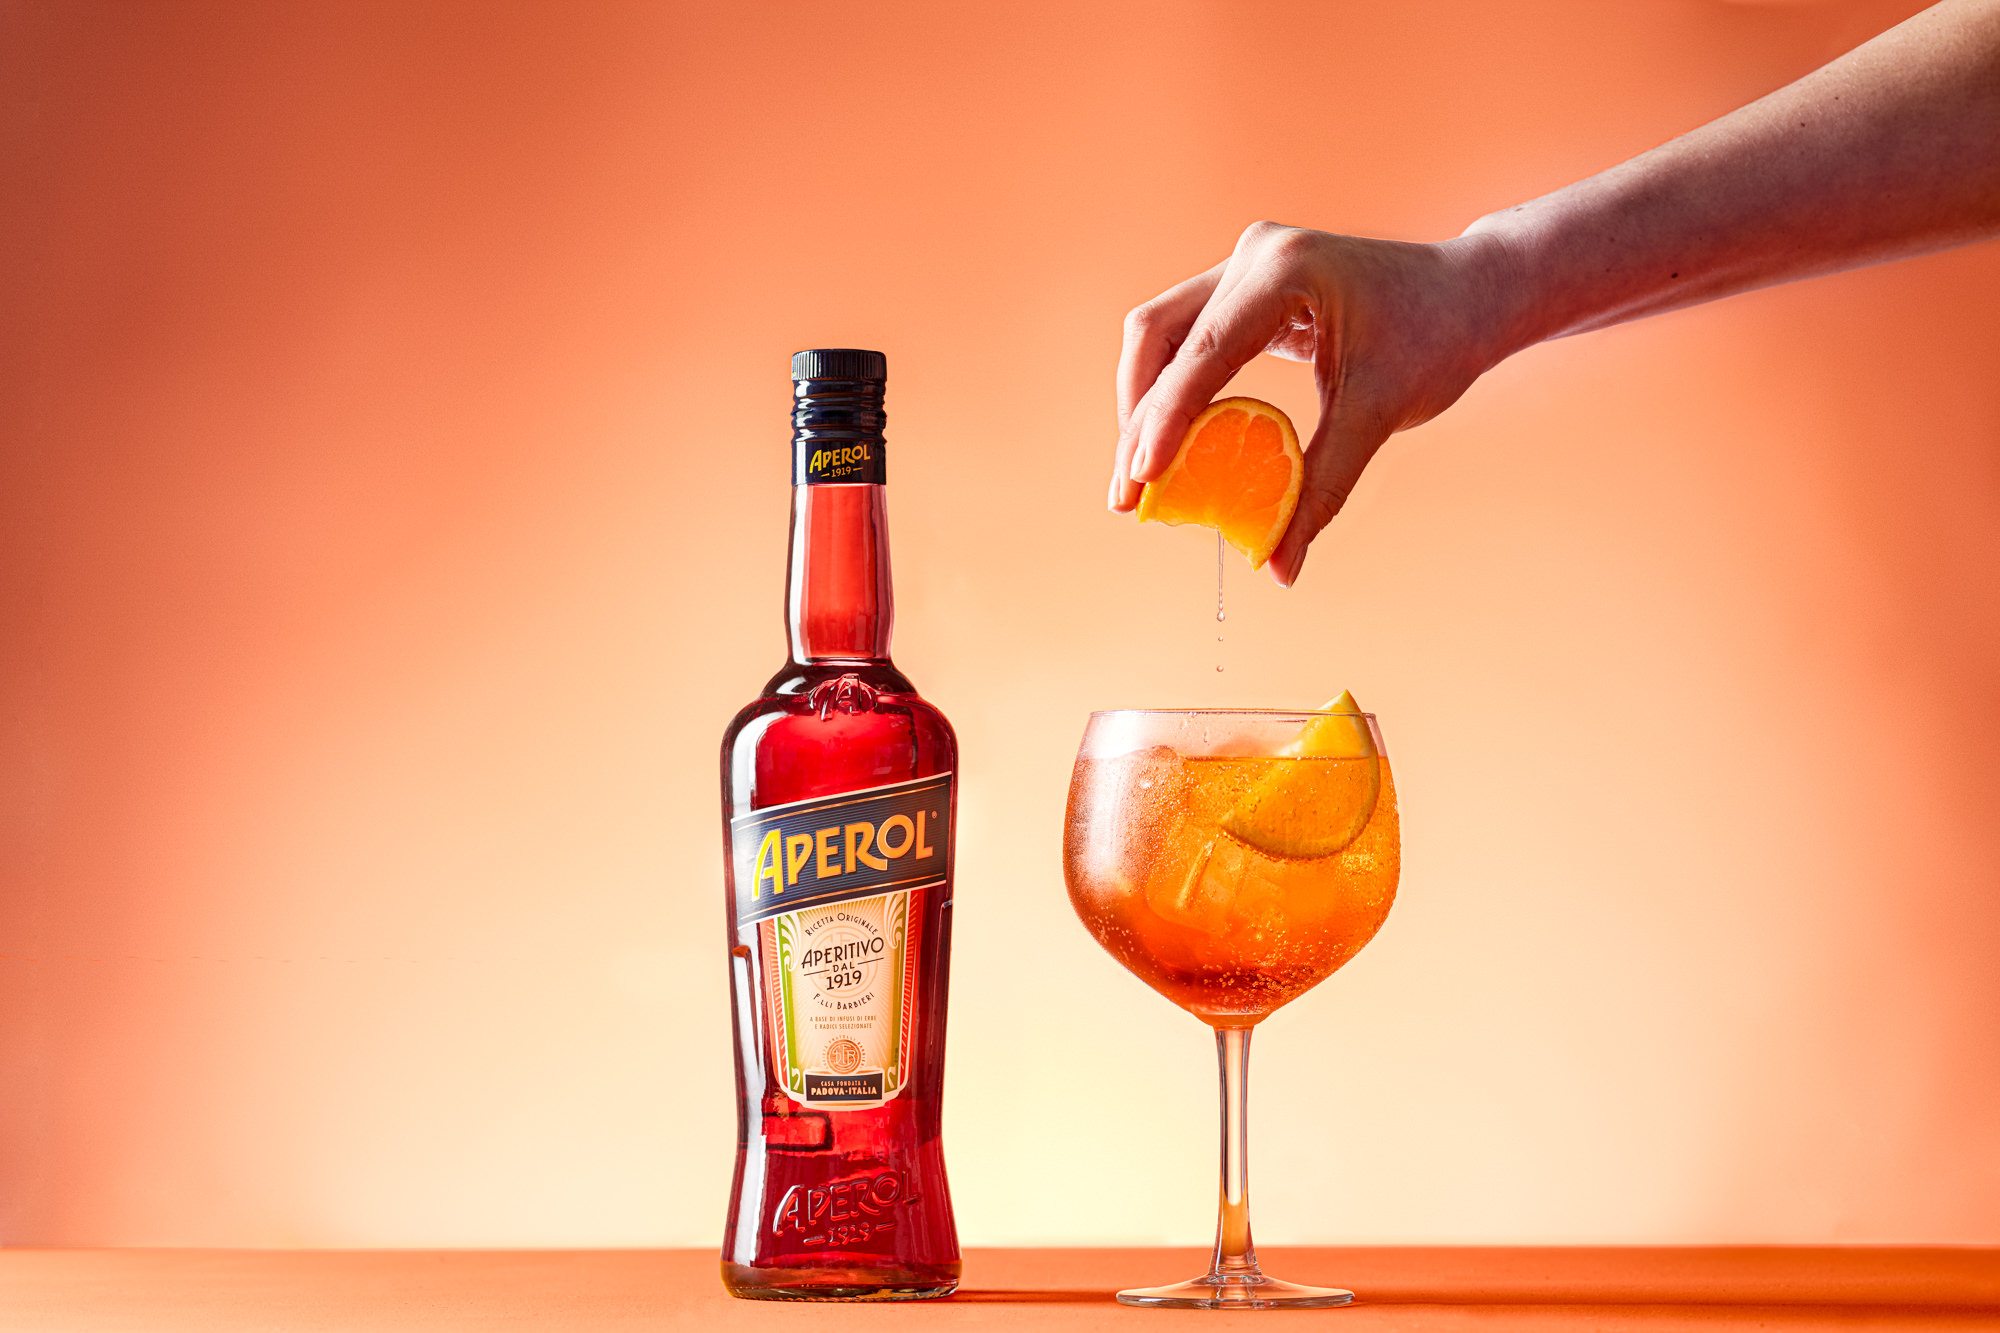 Aperol spritz with orange being squeezed into it